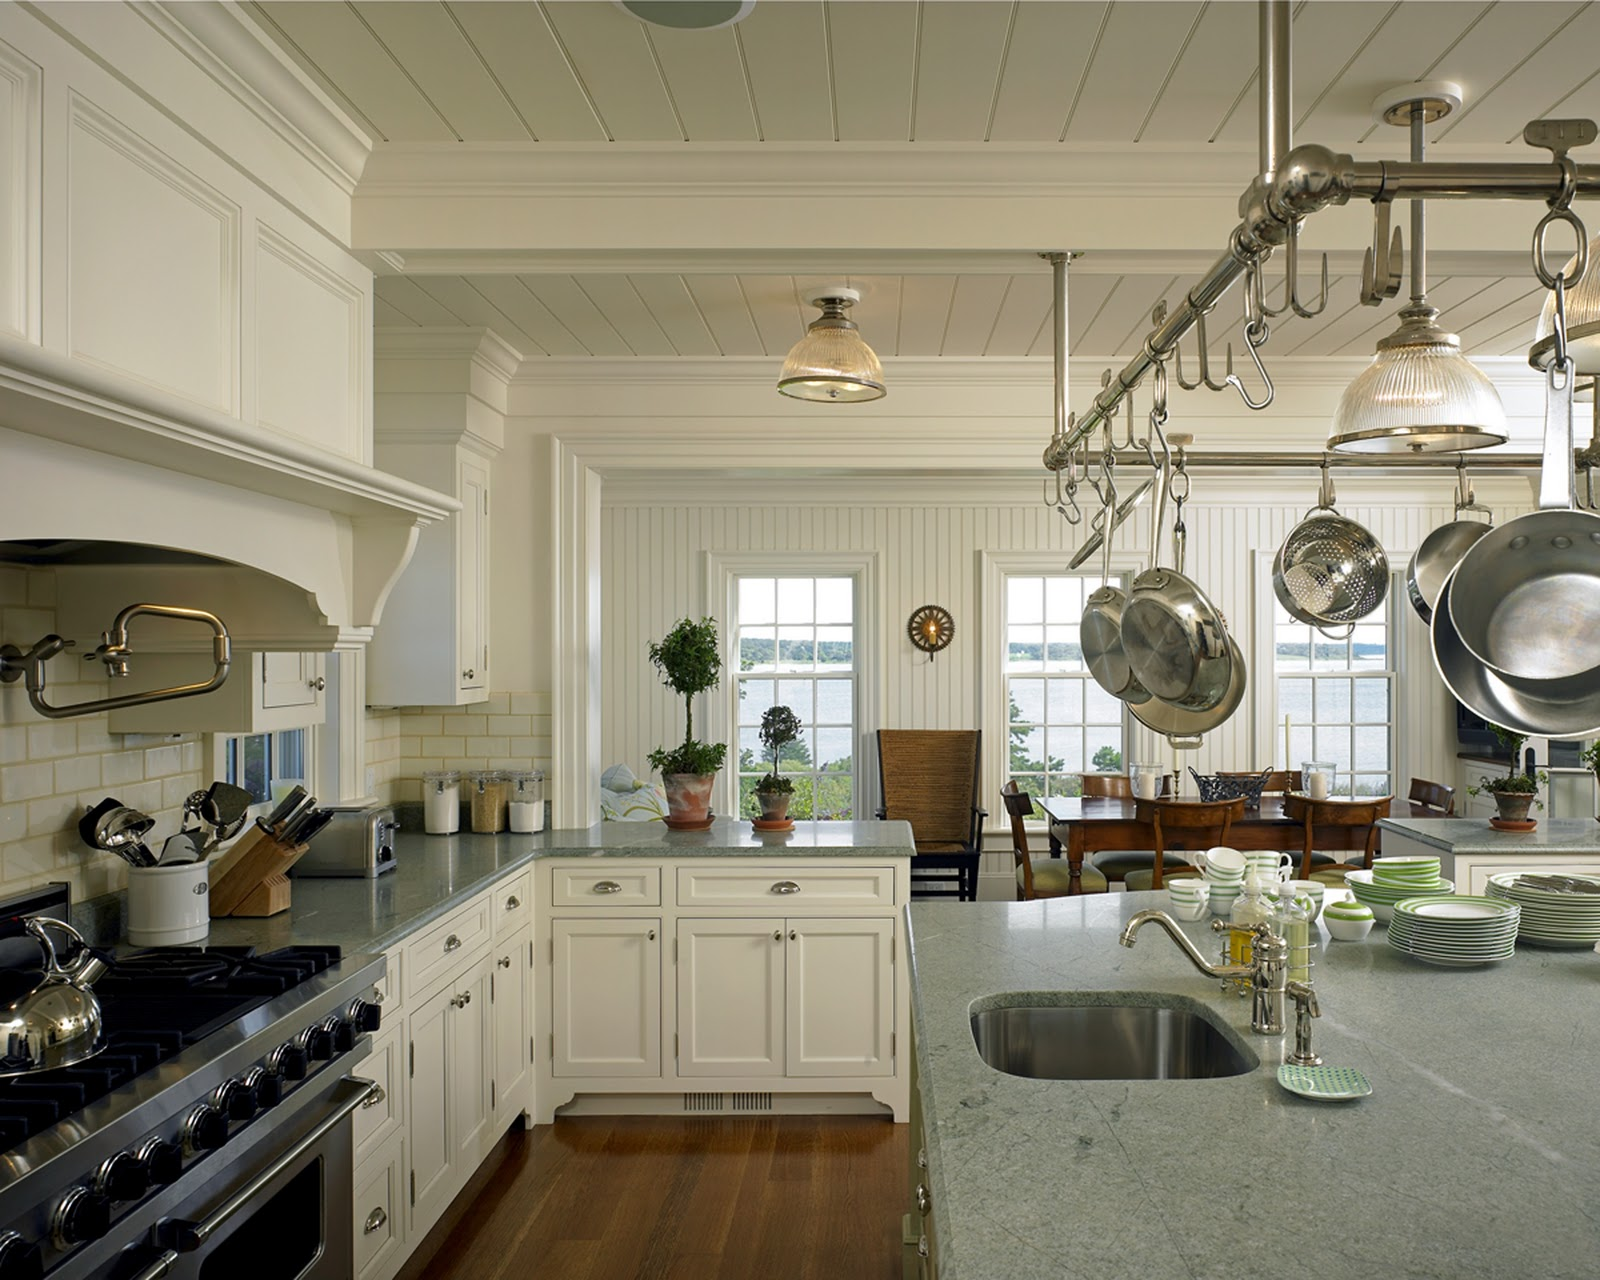 10 easy kitchen decorating ideas | hirerush blog